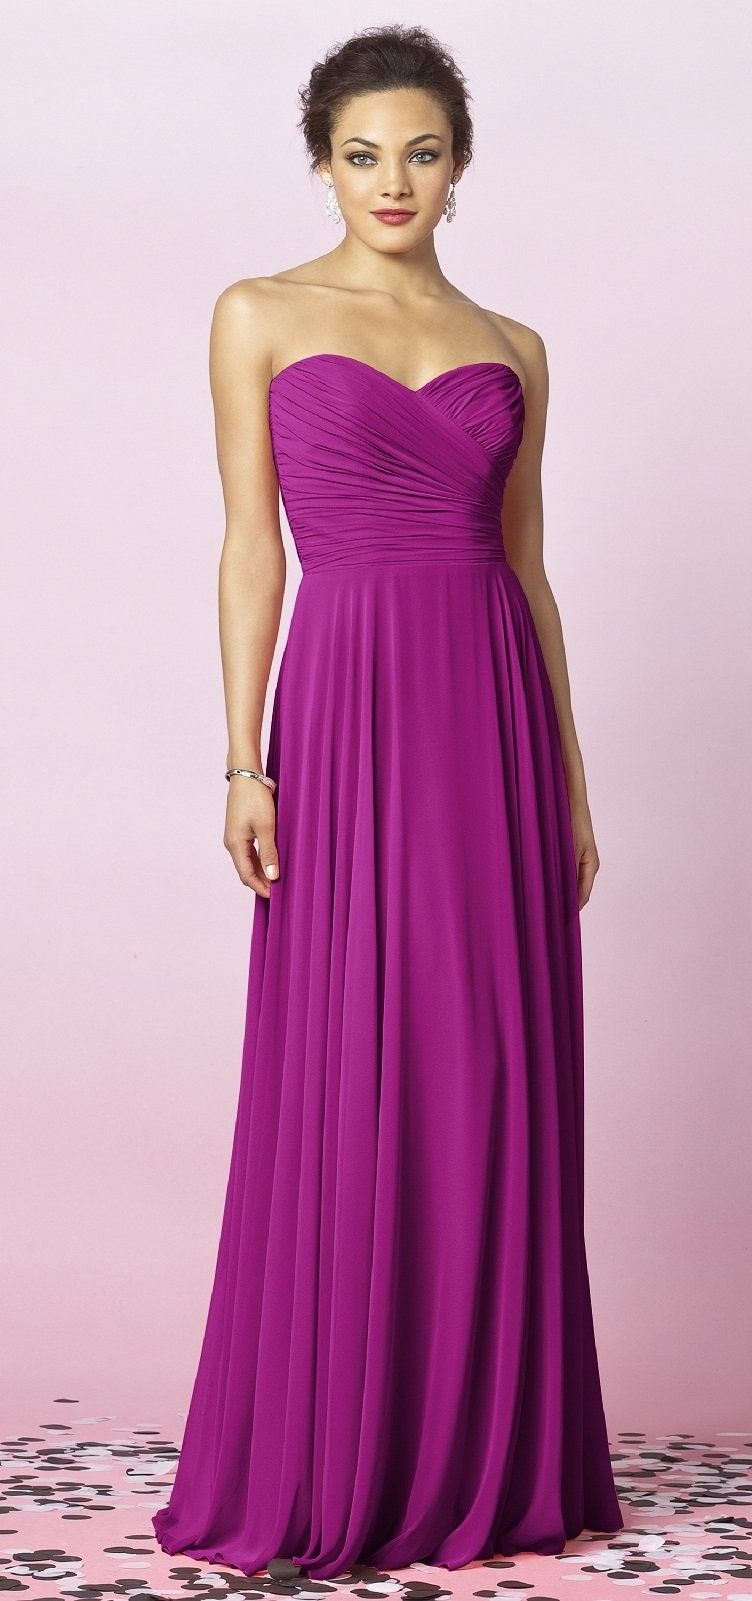 After Six Floor Length Magenta Bridesmaid Dress, STYLE 6639, 1140 ...